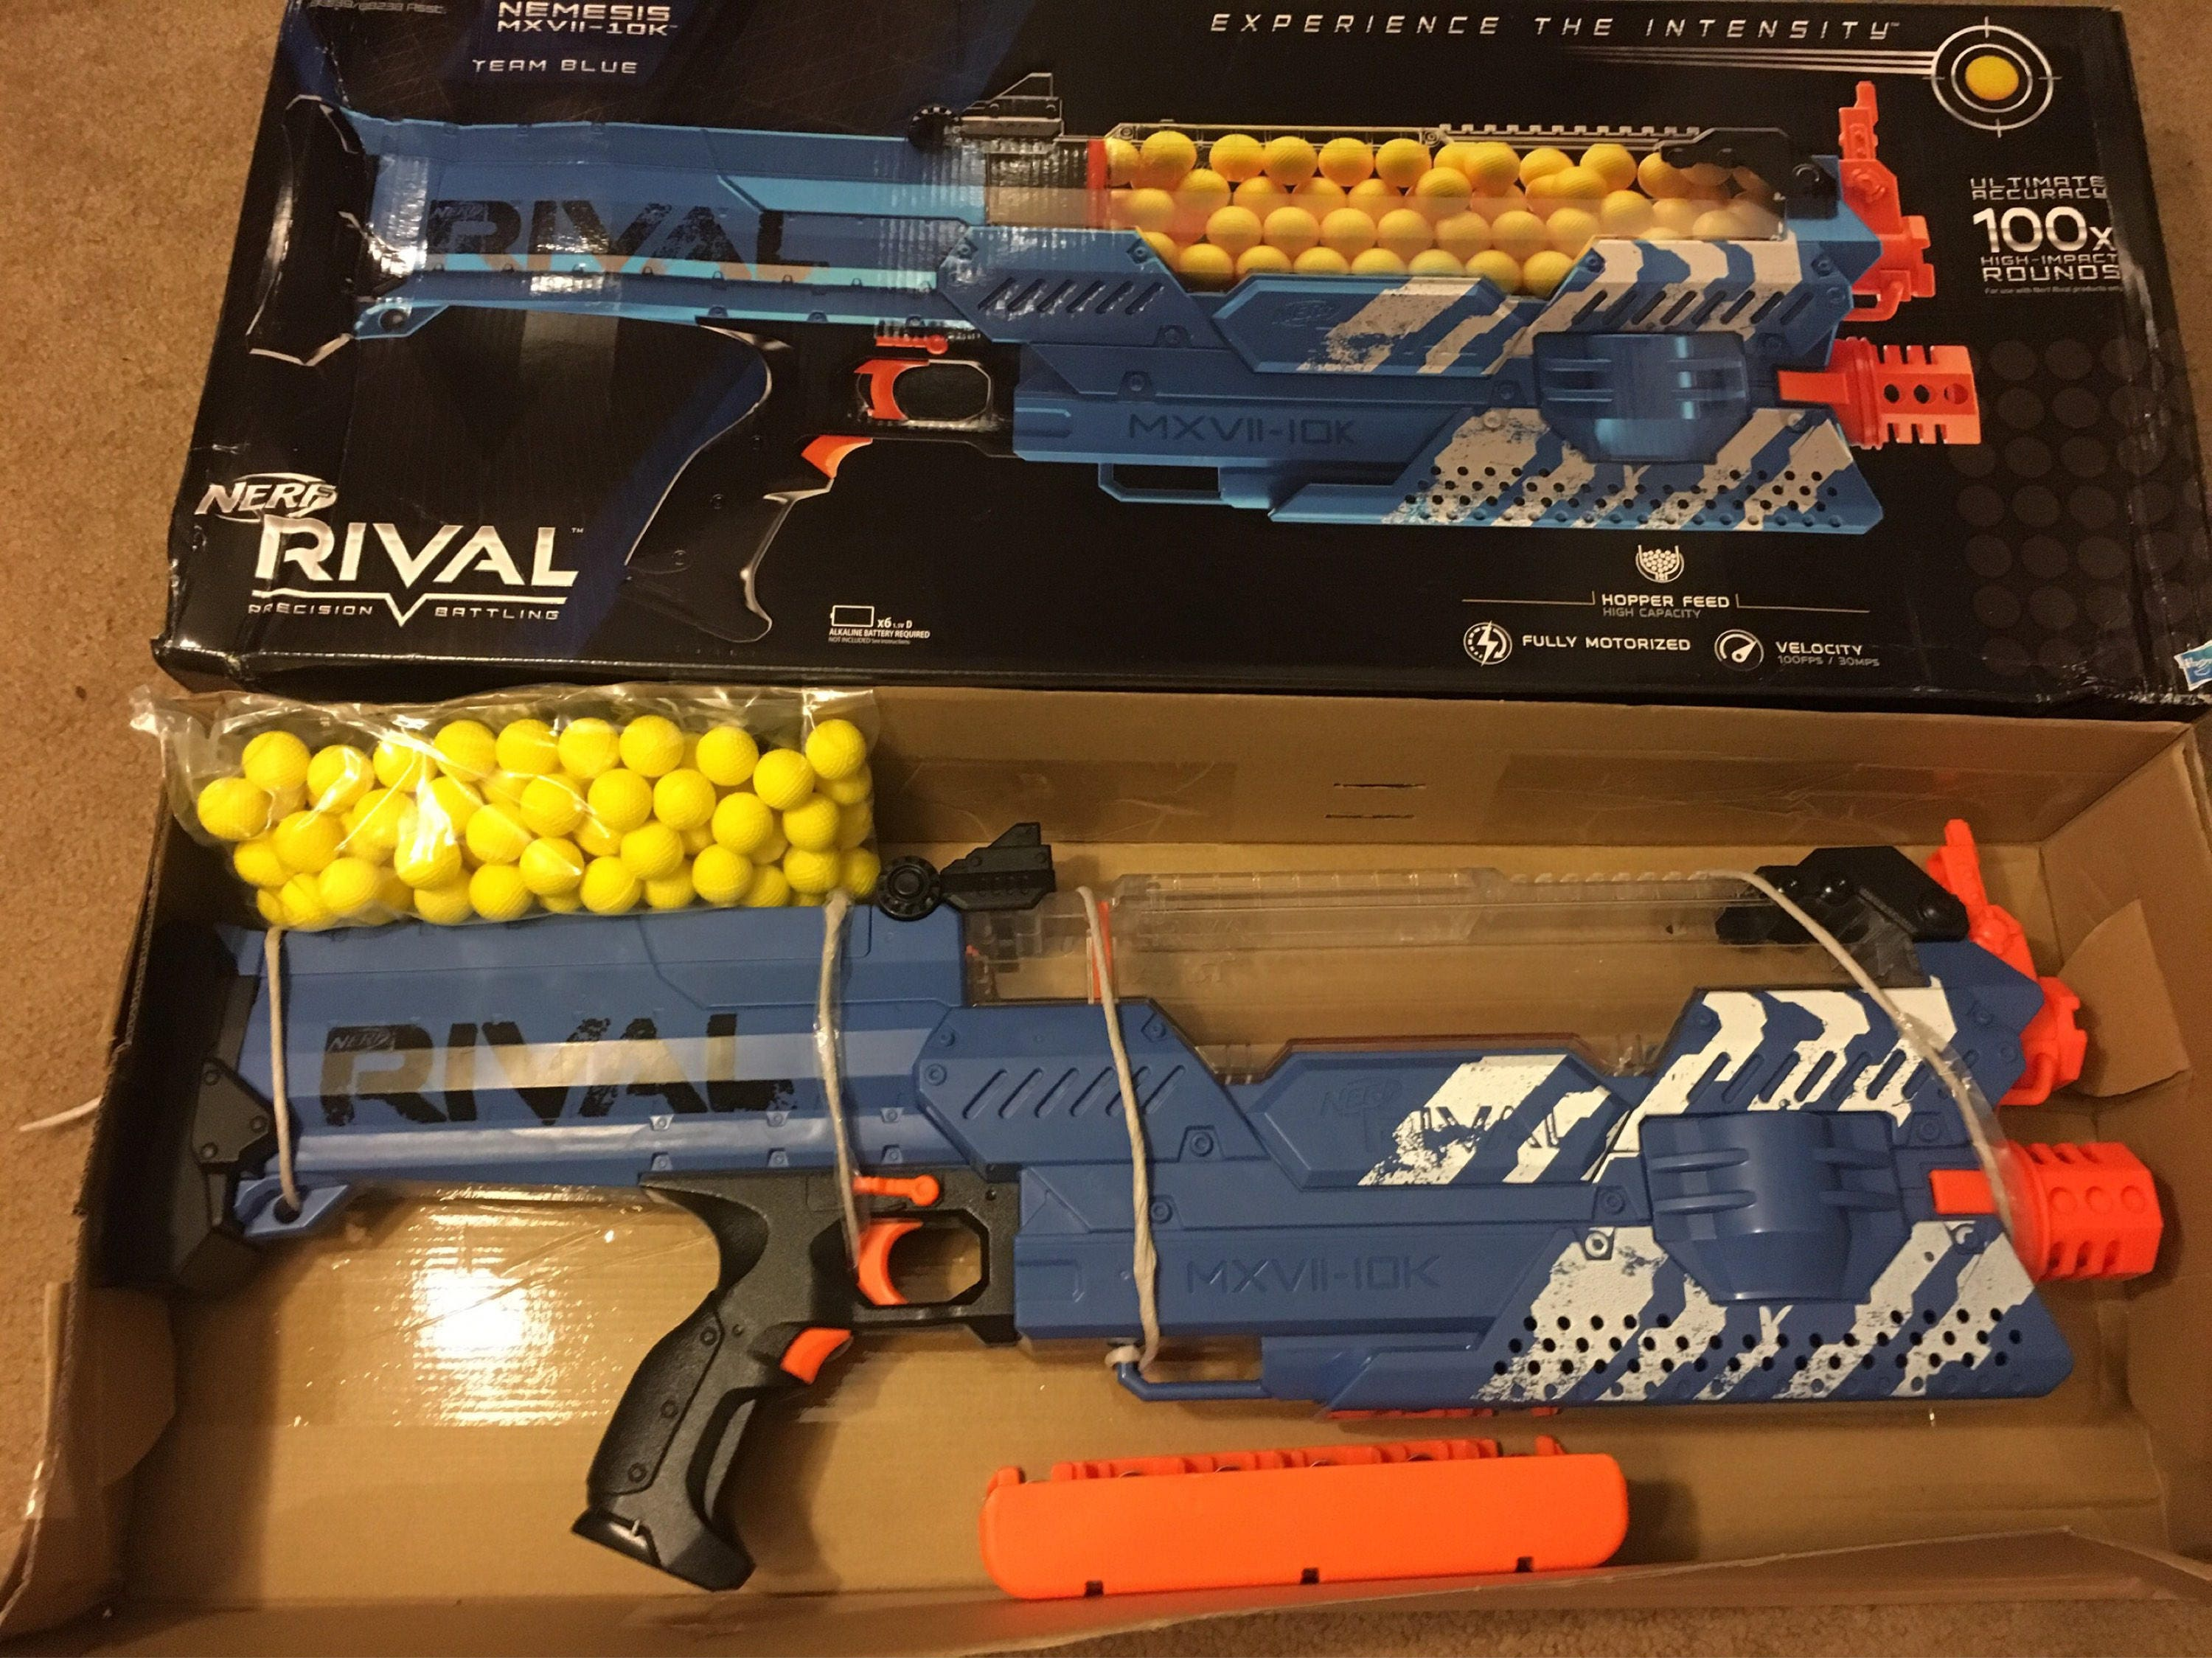 Description This is a Brand New Nerf Rival Nemesis